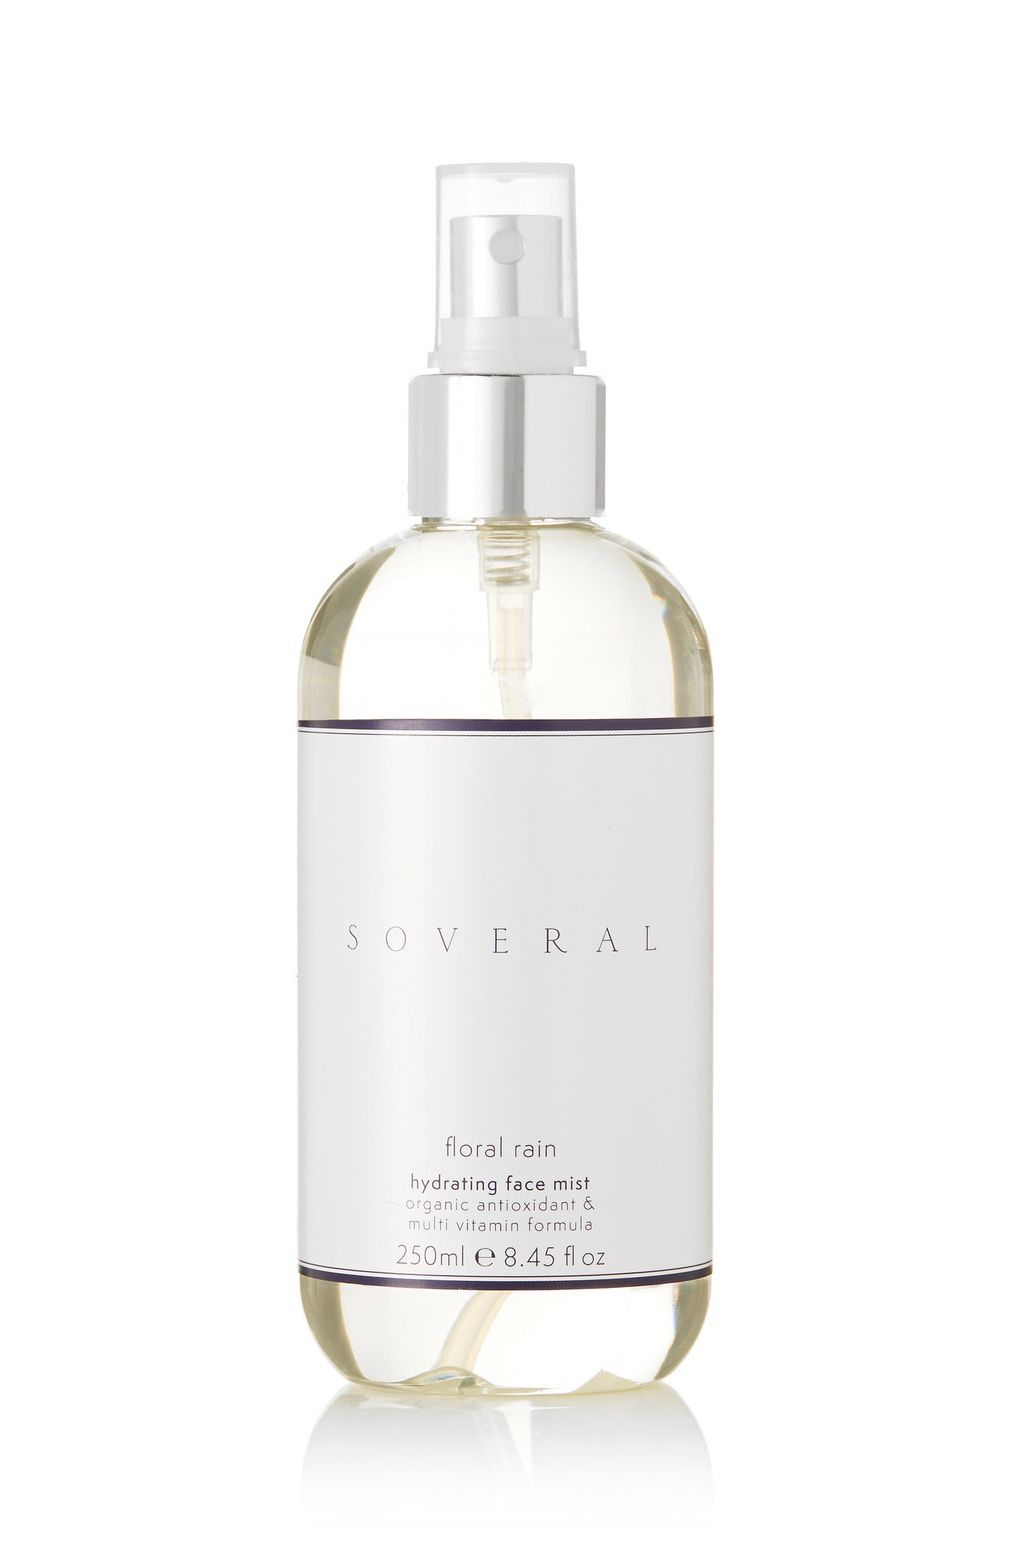 Soveral Floral Rain Hydrating Face Mist